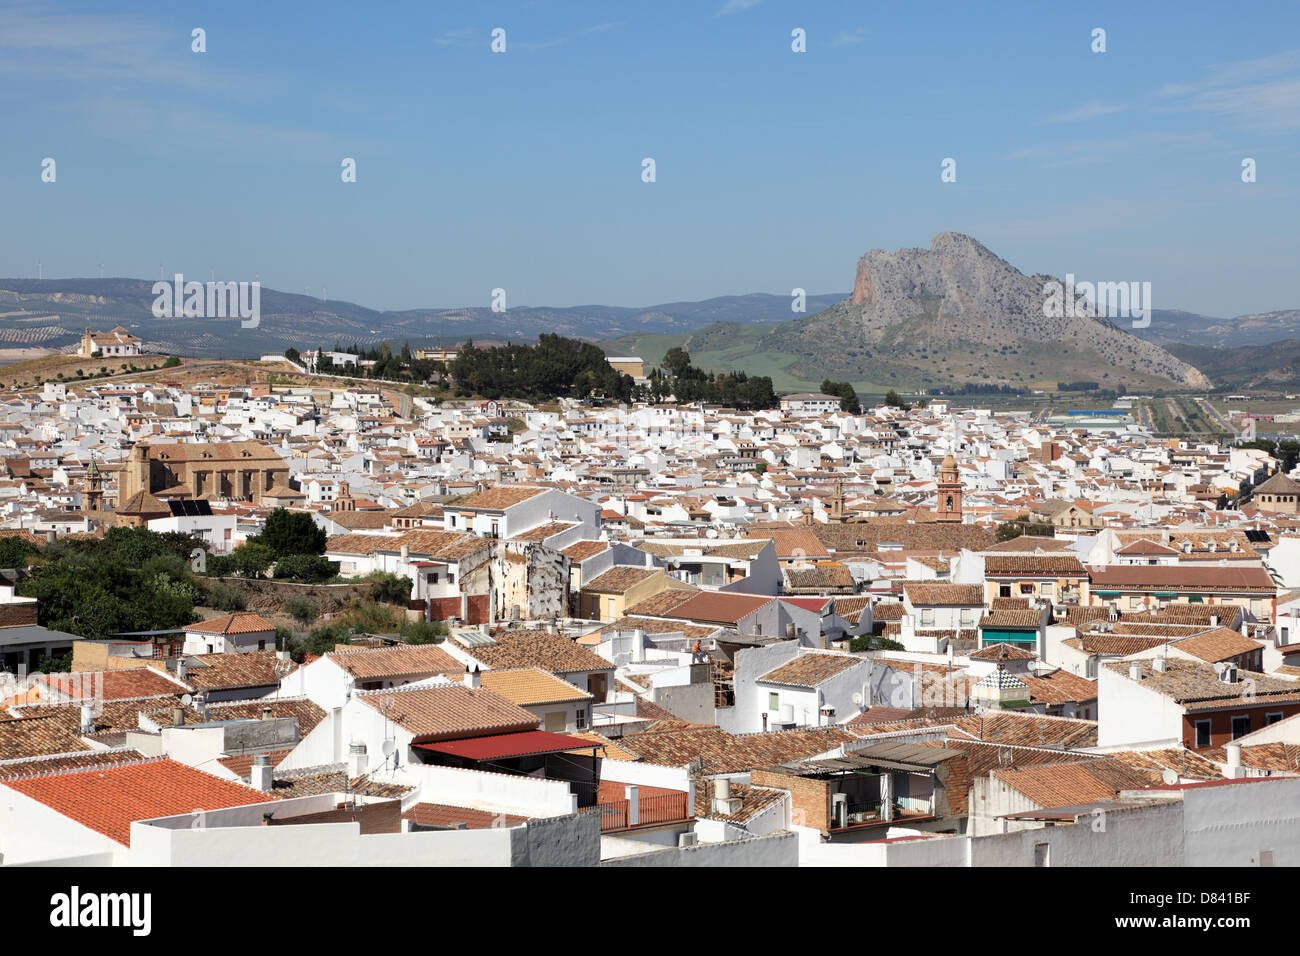 View over the town Antequera, Andalusia Spain - Stock Image